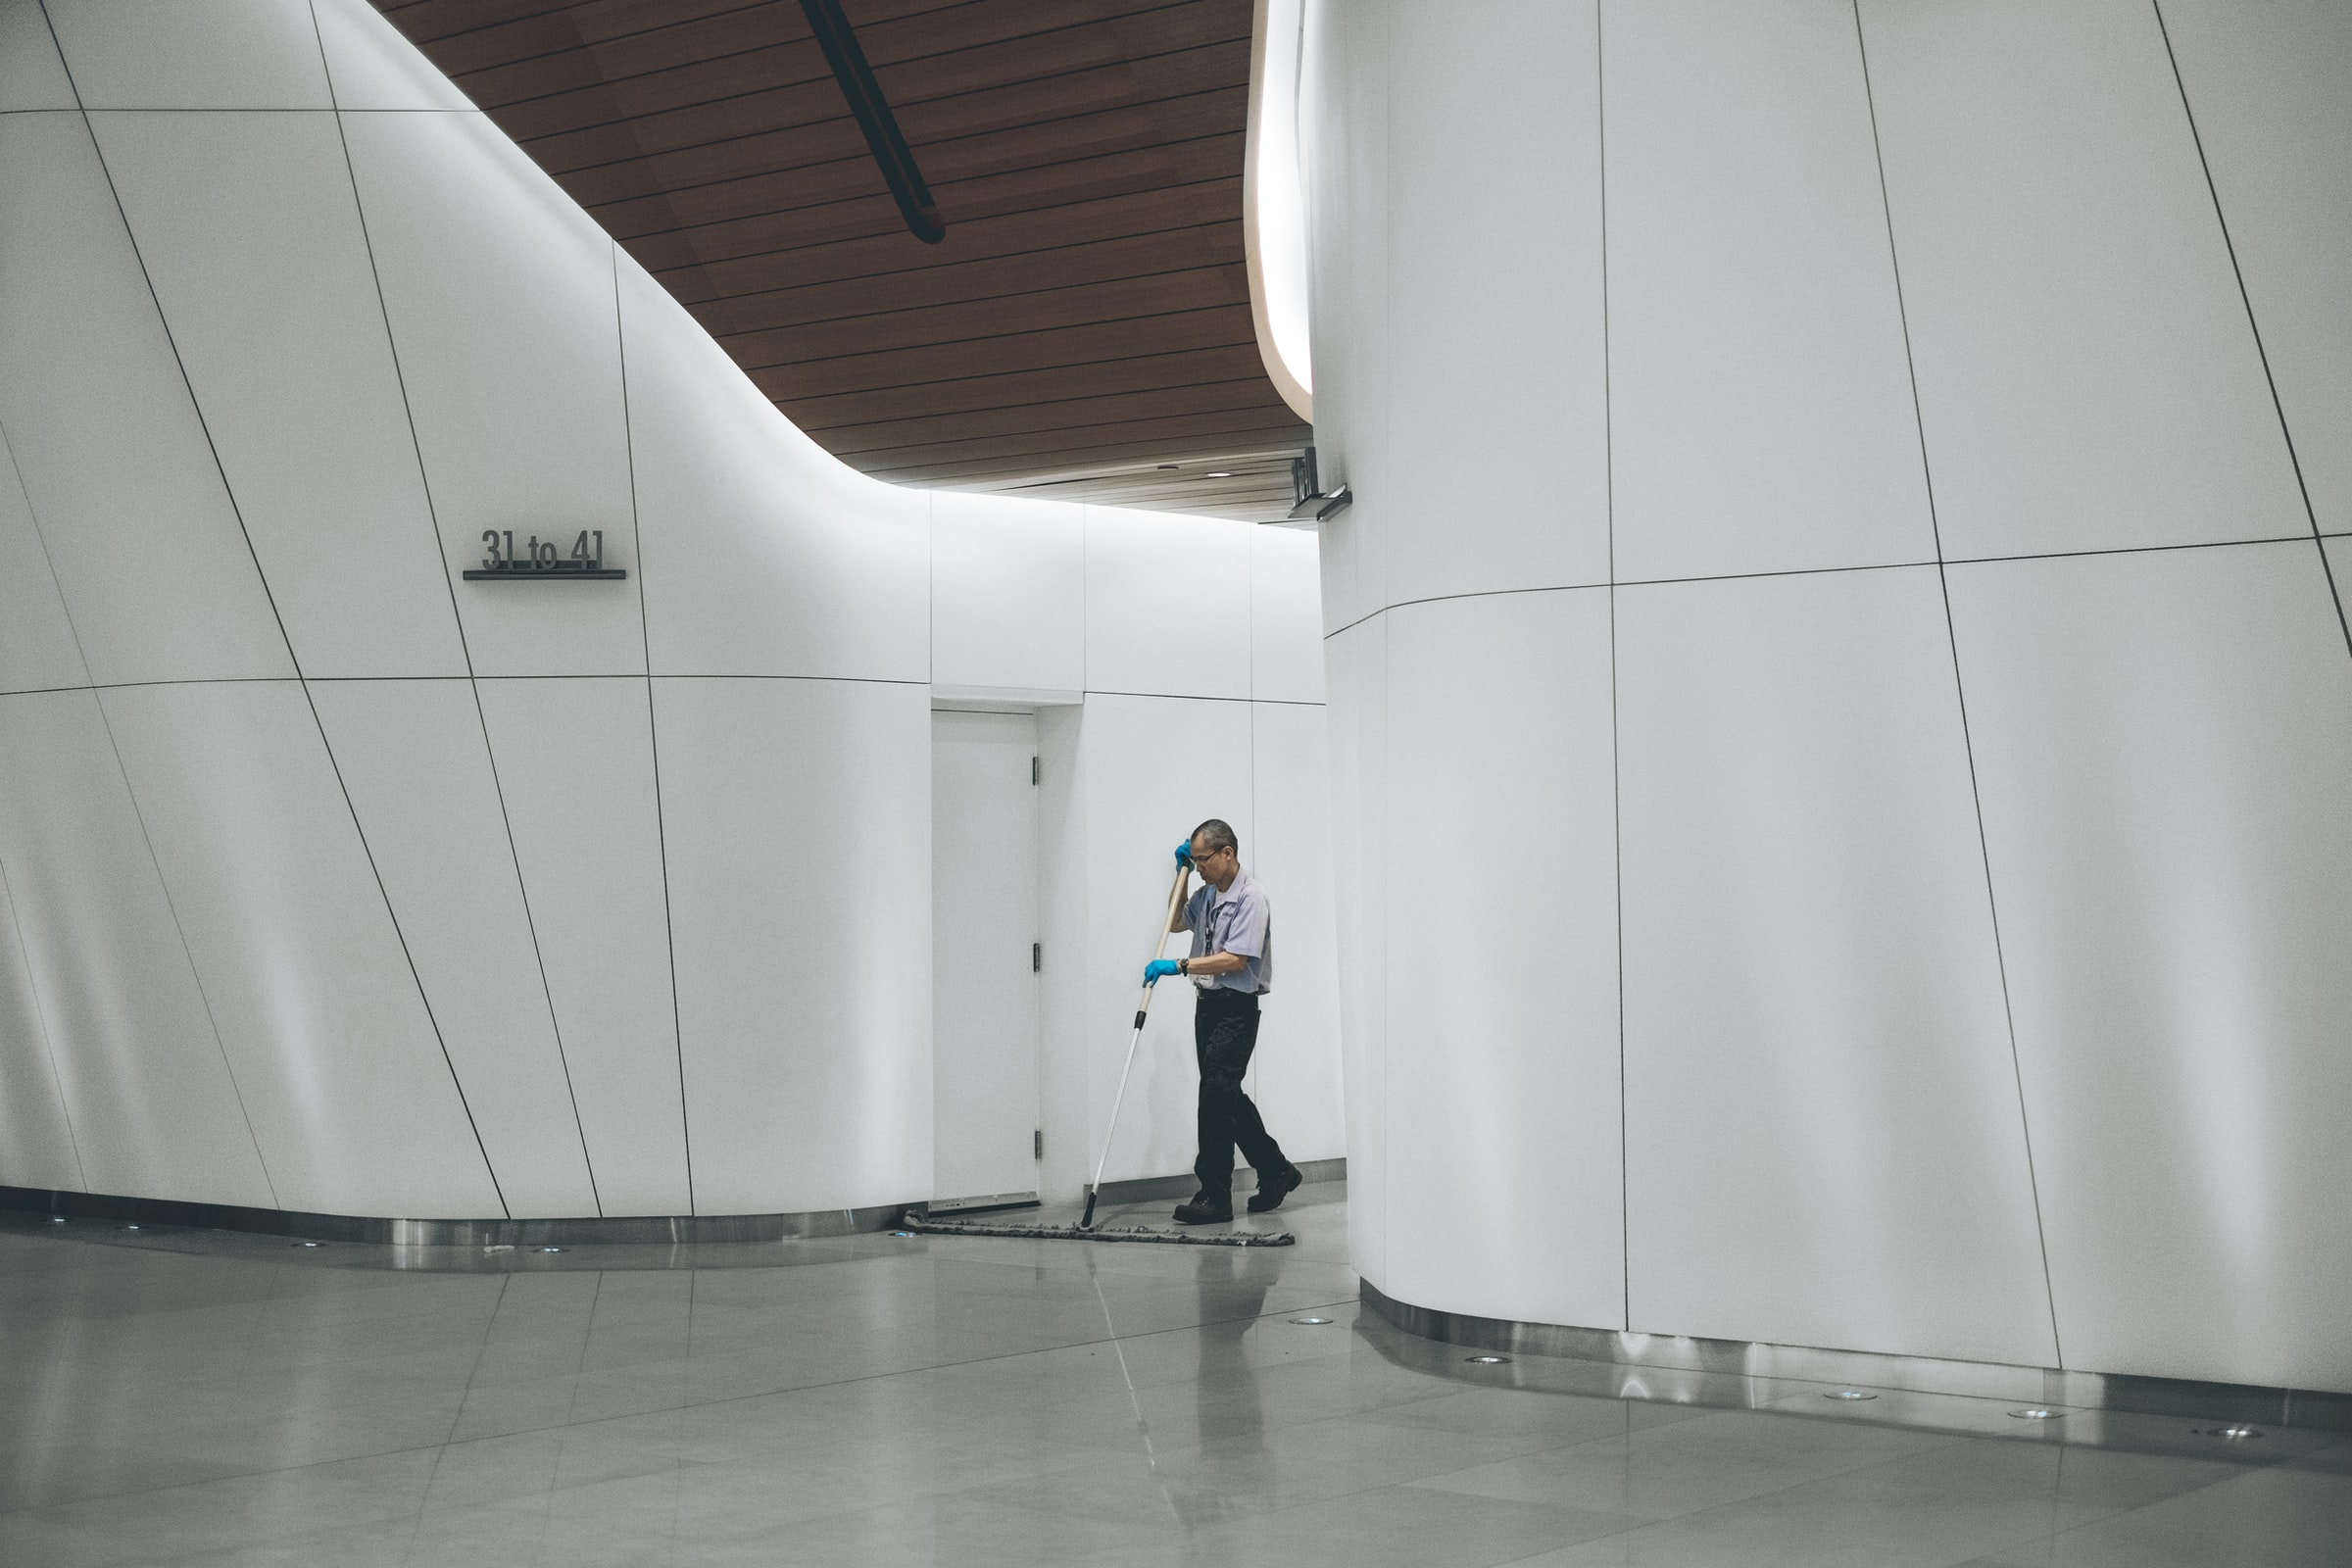 Clean Manufacturing facility cleaning service